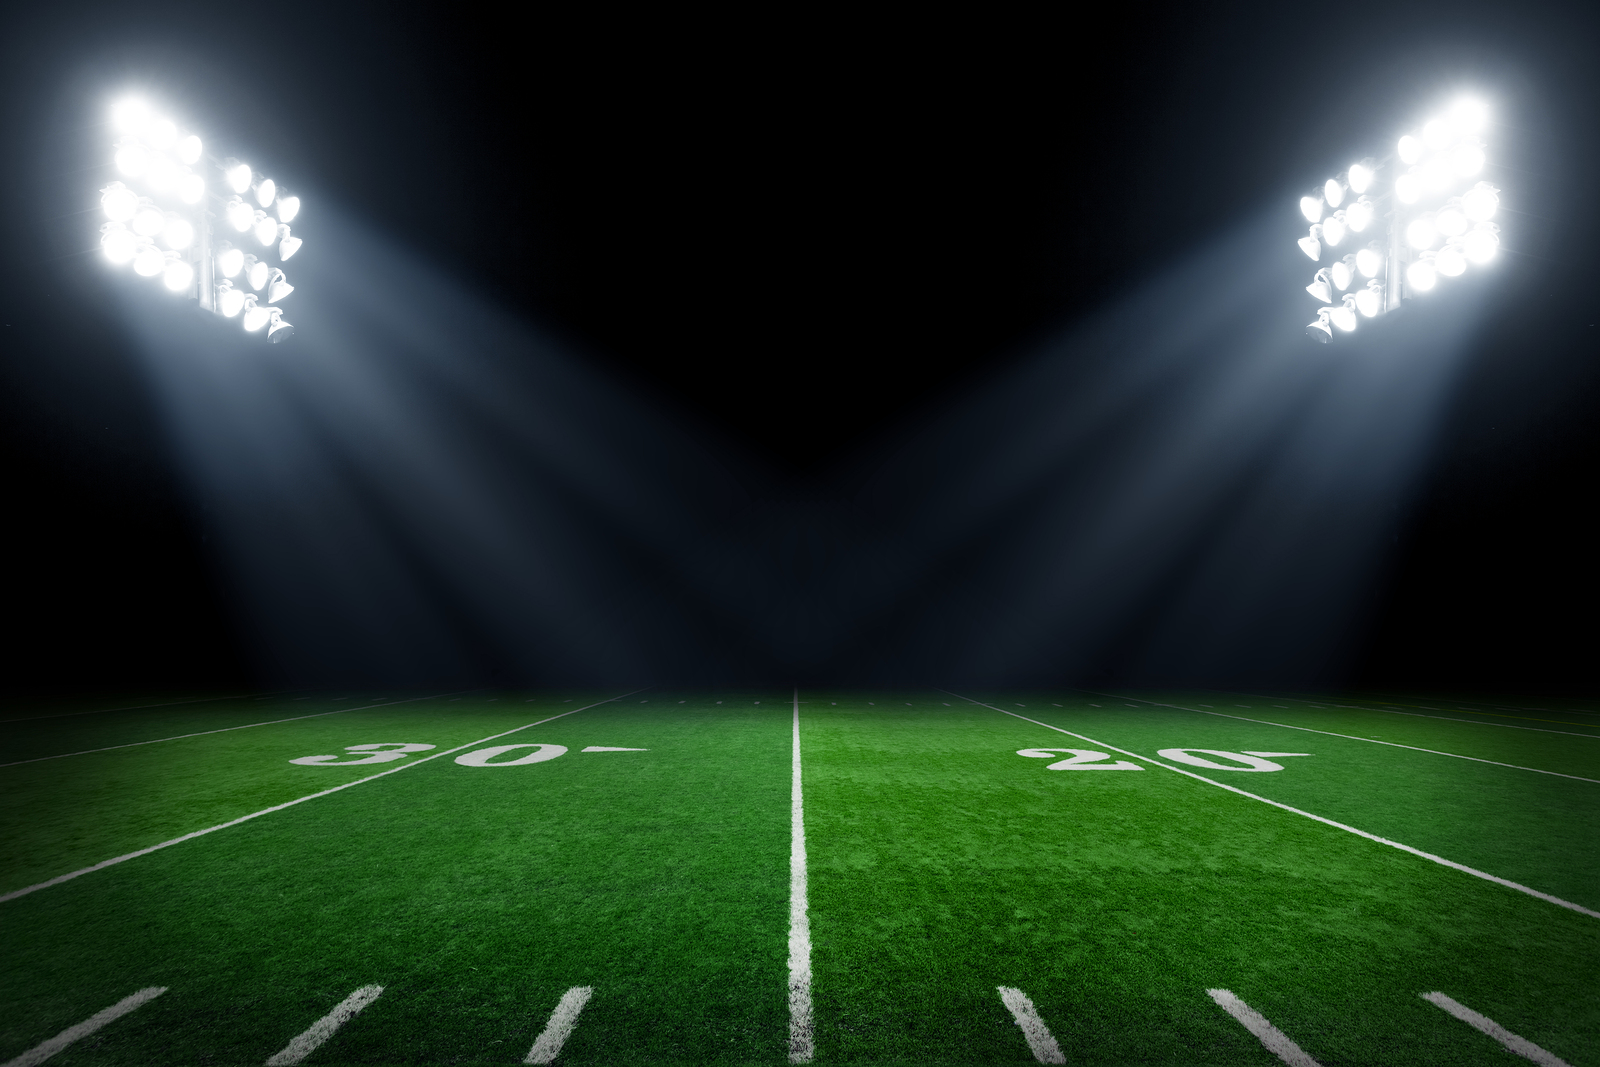 The Nfl Addresses Sportsmanship Taunting For Youth Sports The